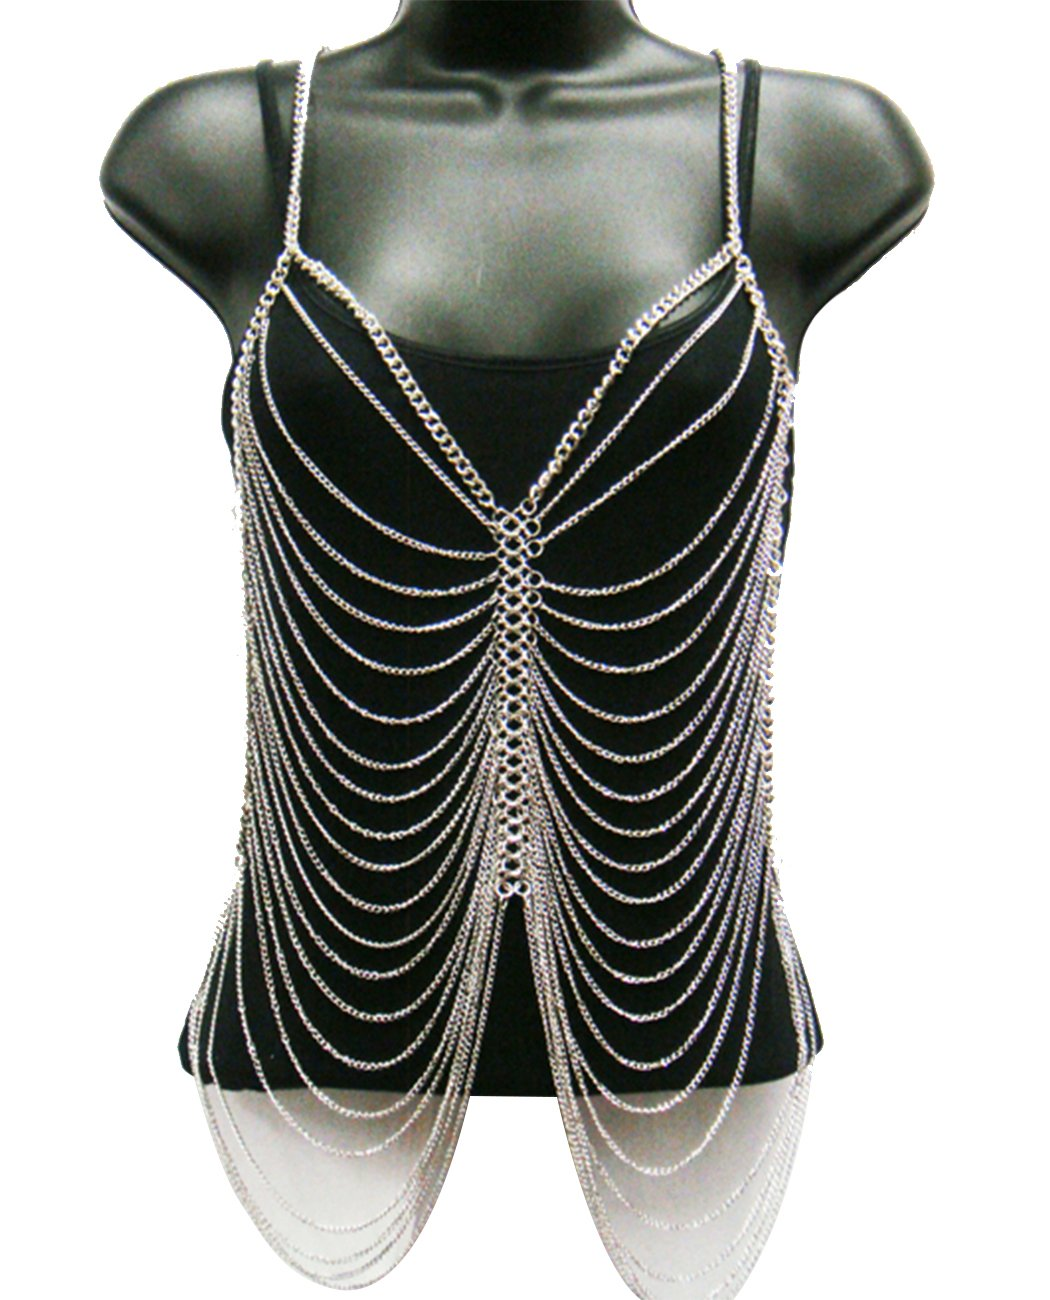 NYFASHION101 Ladies' Classic Multi Strand Fashion Body Chain Jewelry IBD1019R, Silver-Tone